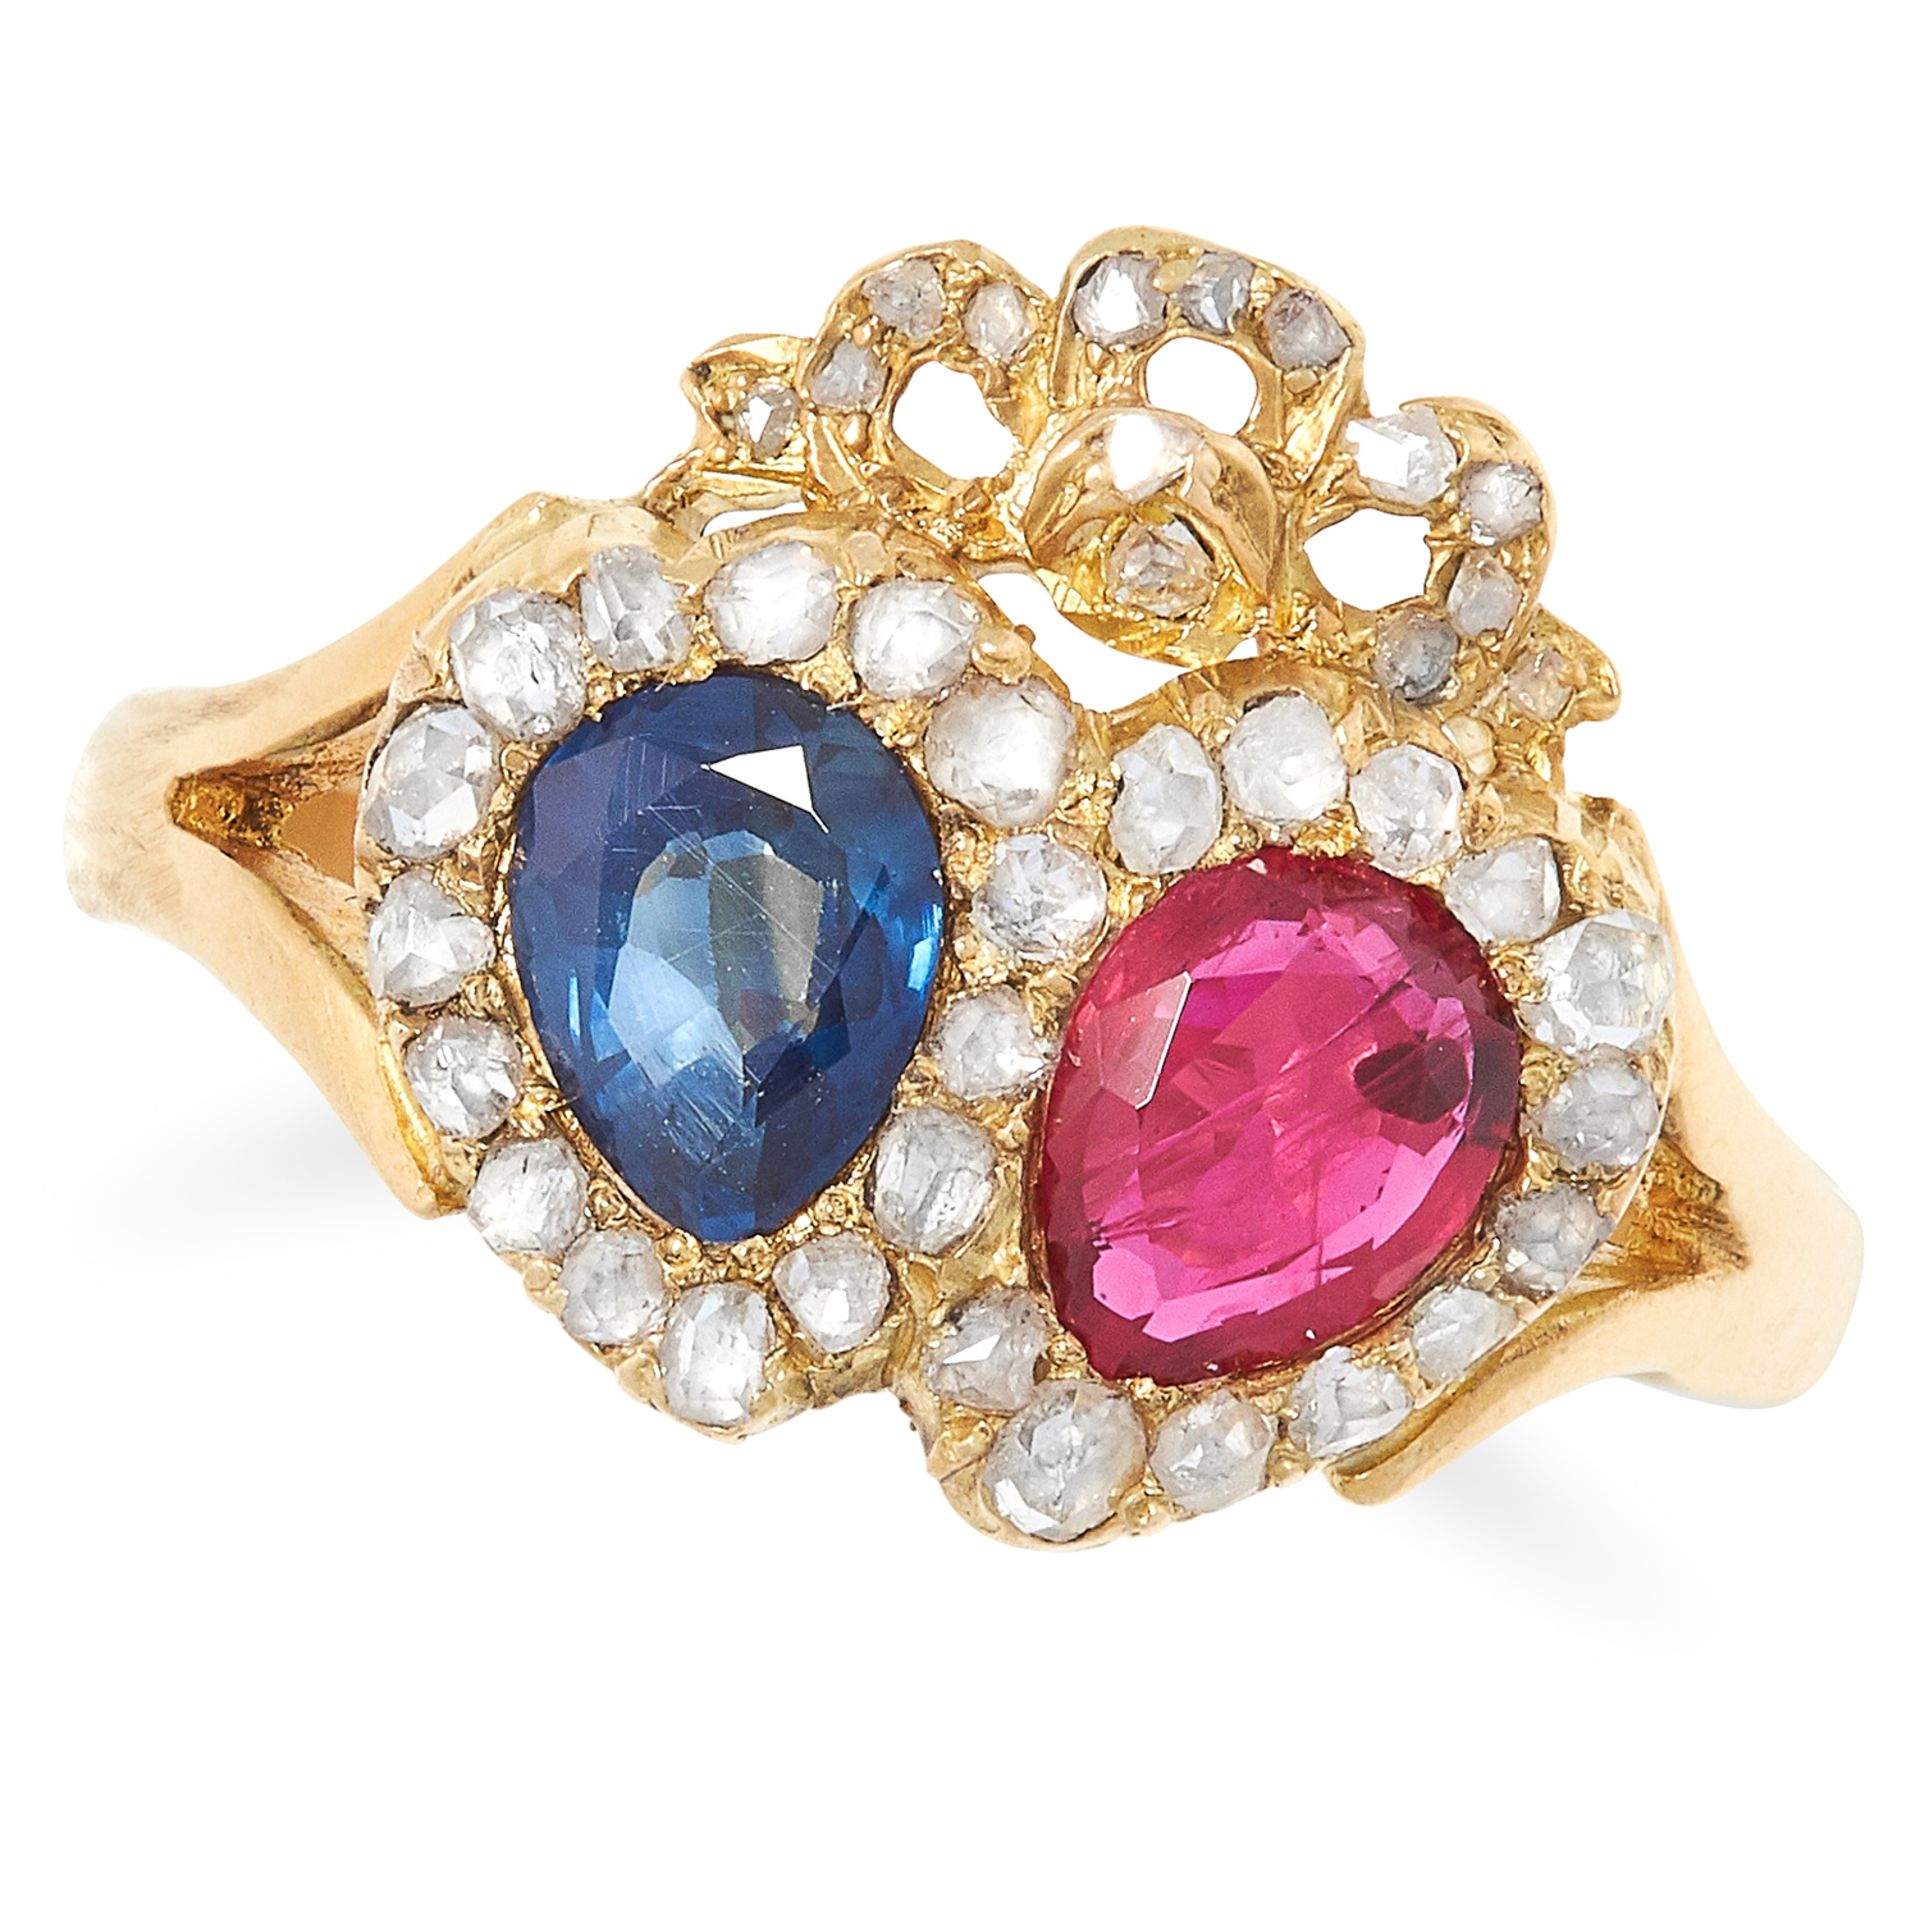 SAPPHIRE, RUBY AND DIAMOND SWEETHEART RING set with a cushion cut sapphire and ruby in a border of